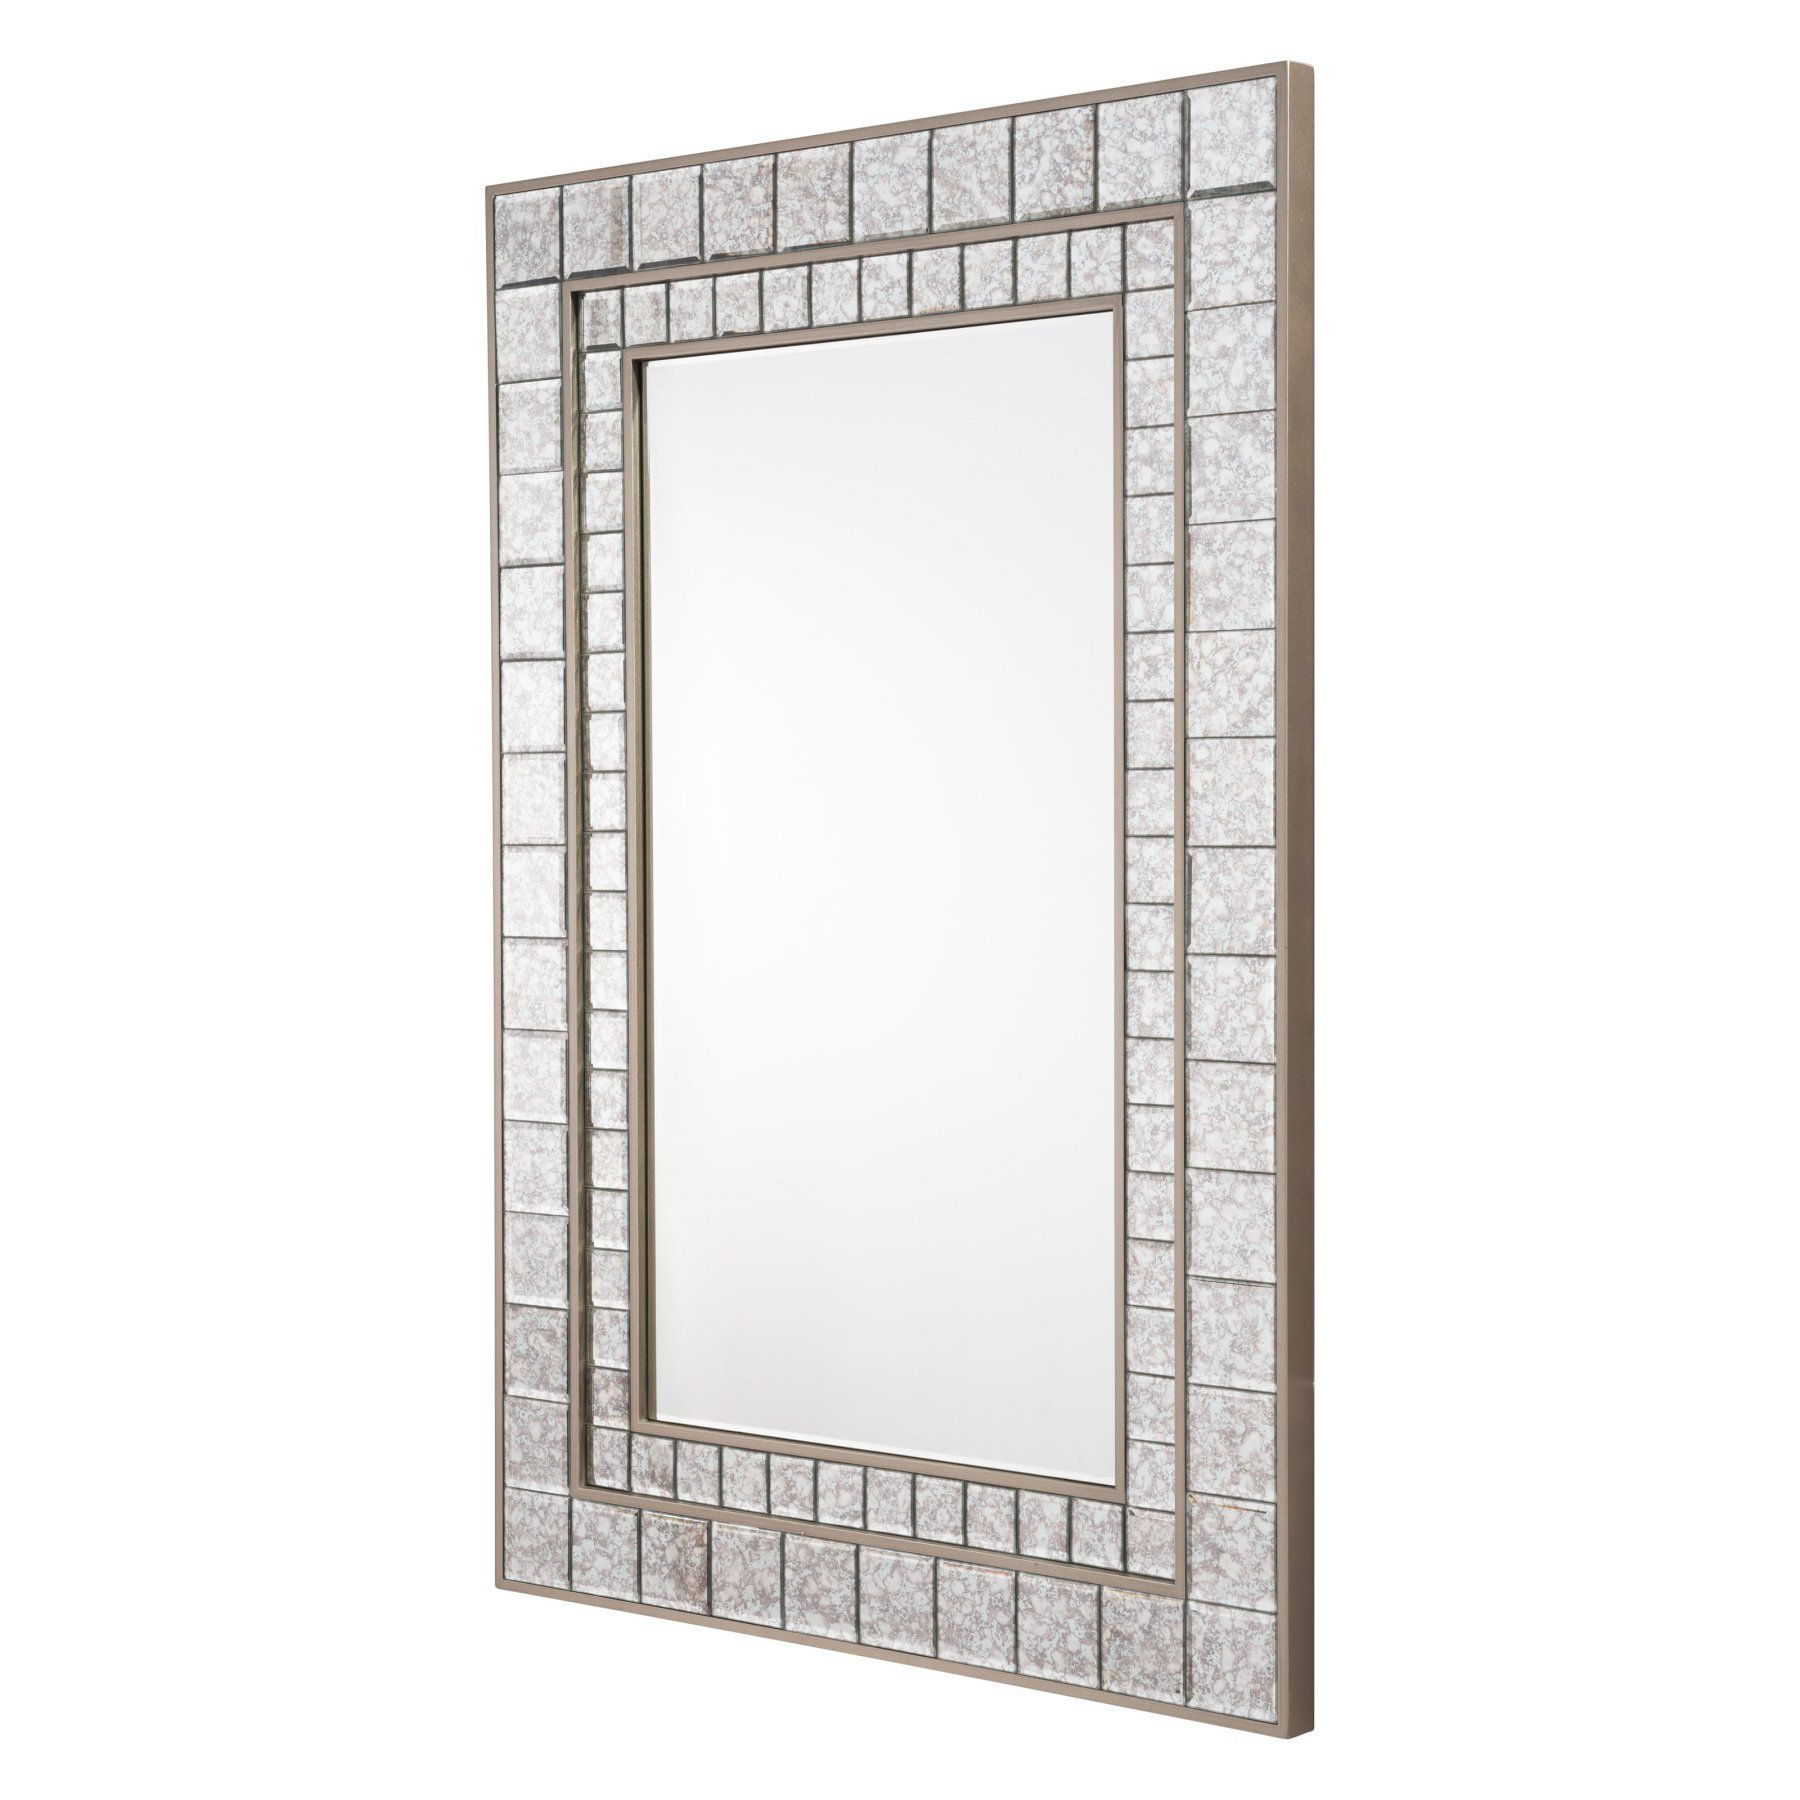 Pennsburg Rectangle Wall Mirrors For Best And Newest Zuo Modern Contemporary Antique Square Mini Mirror Framed Mirror (View 10 of 20)